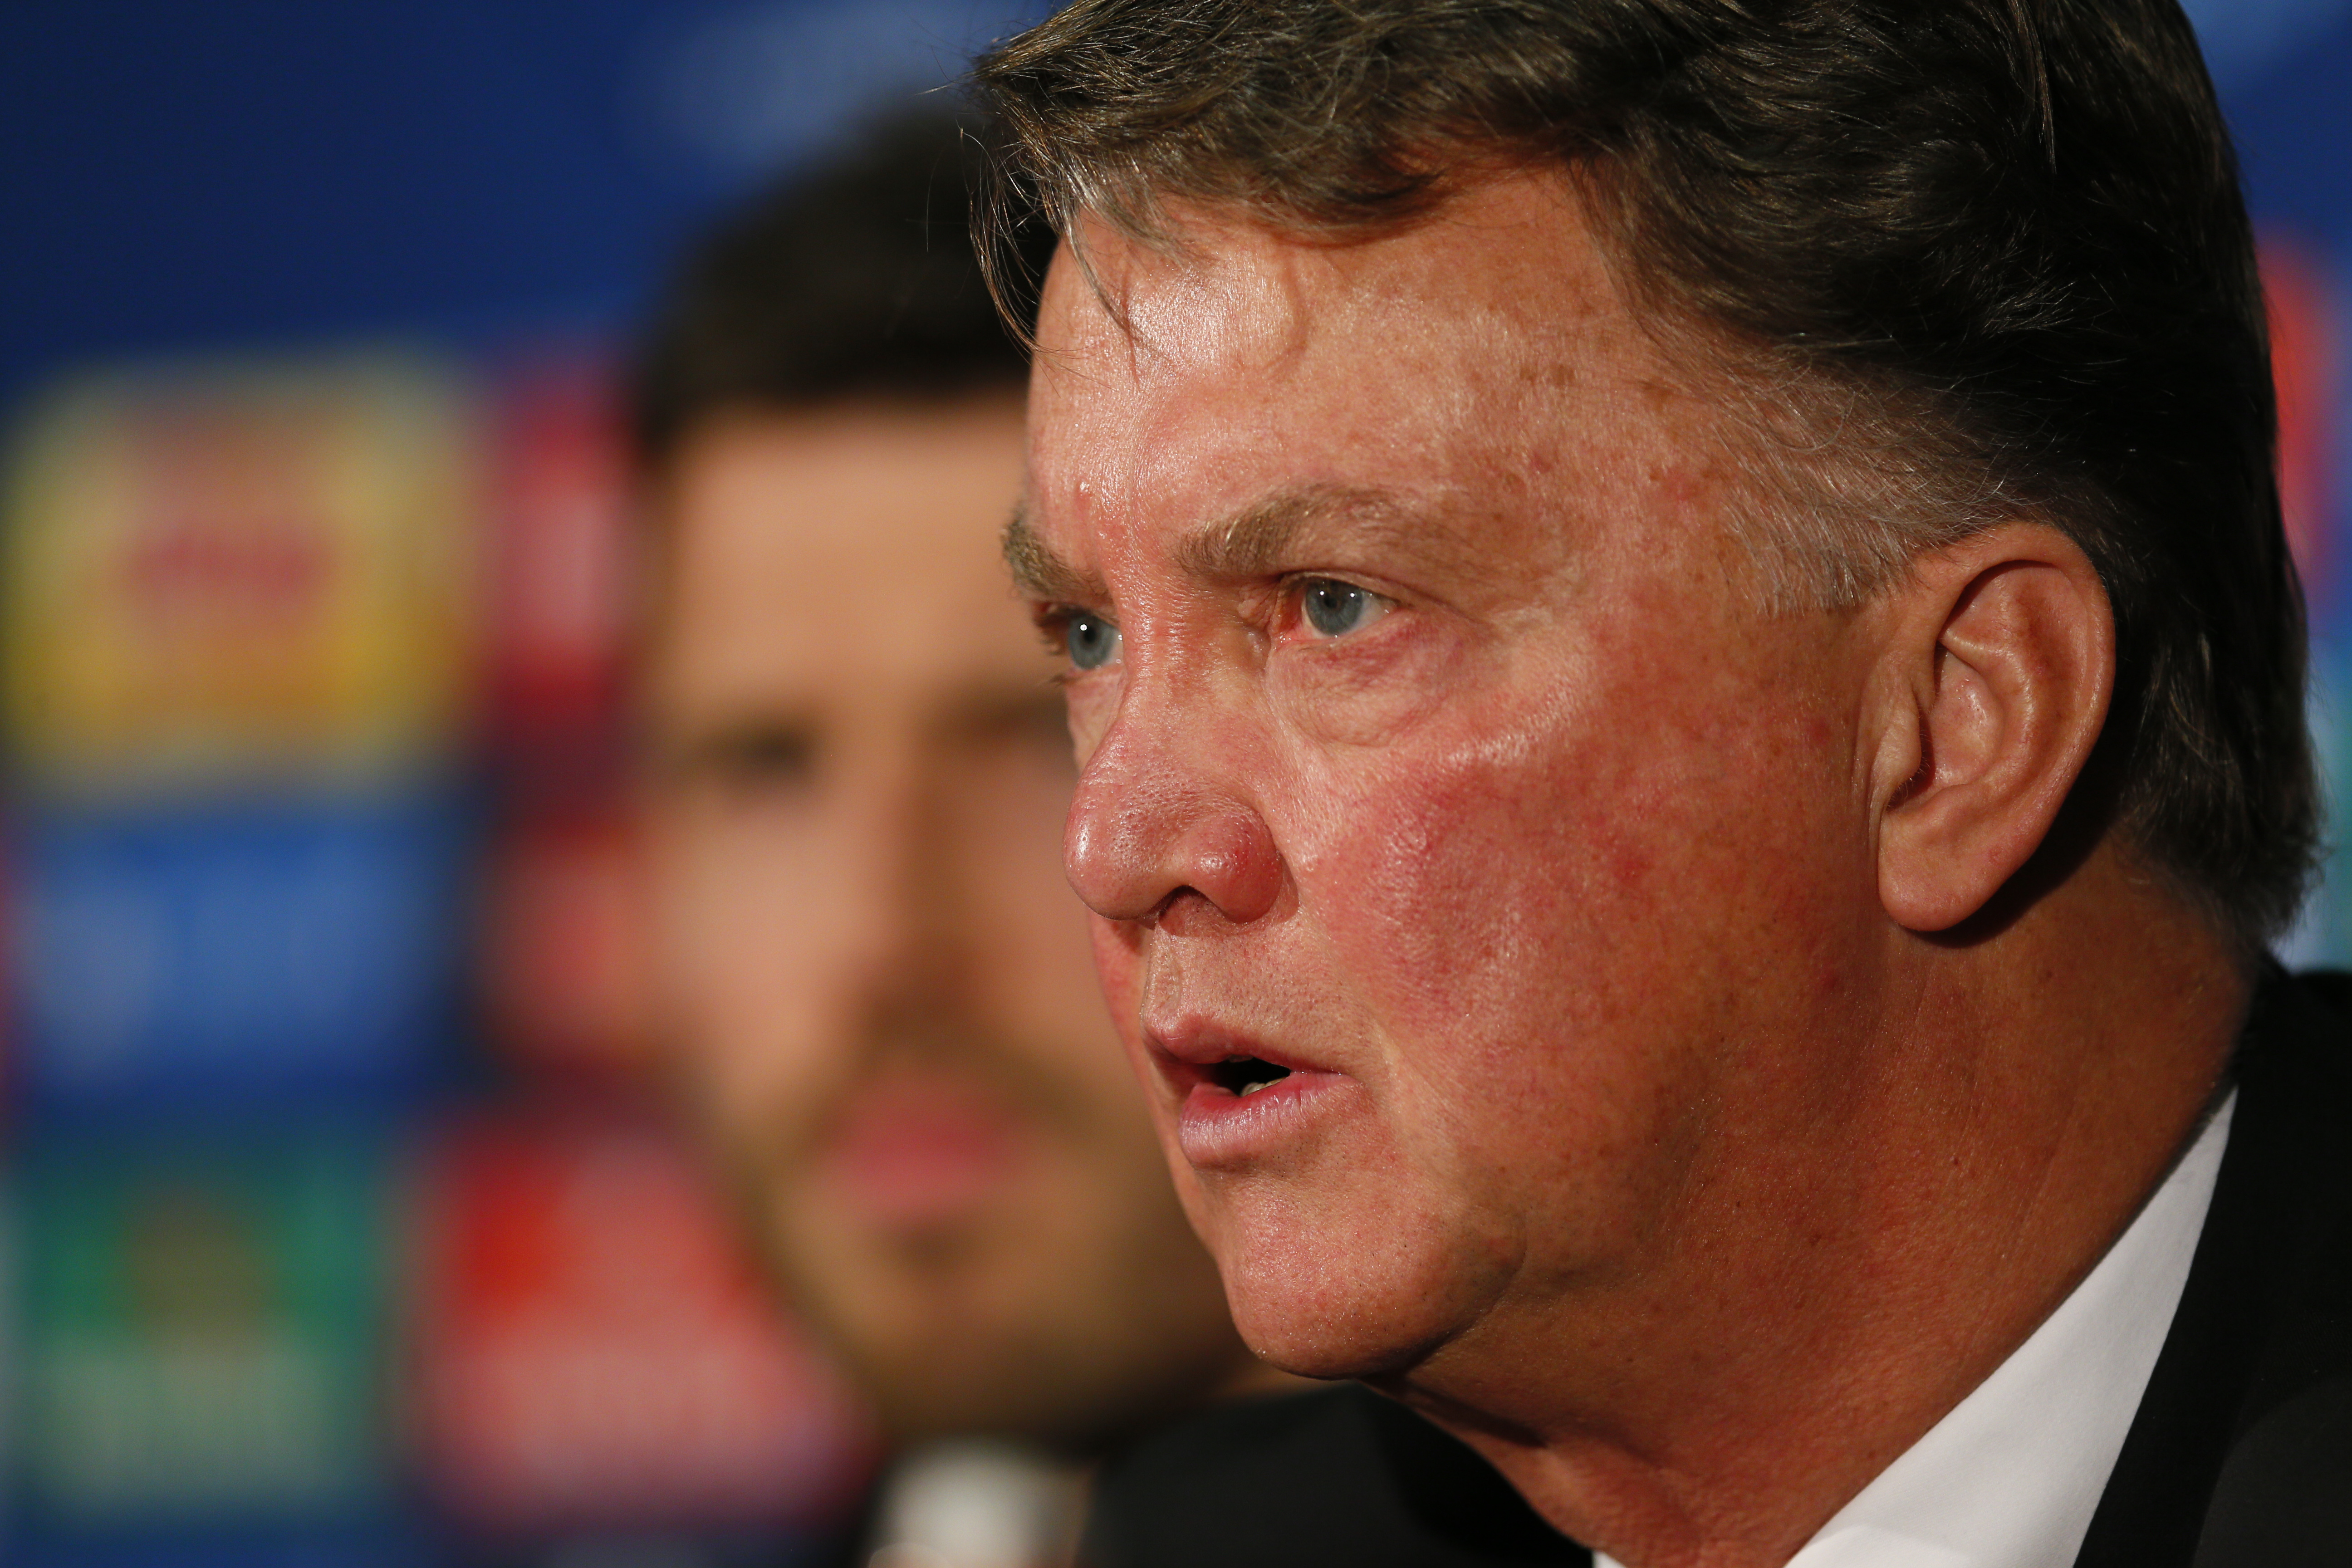 Manchester United manager Louis van Gaal during the press conference at Old Trafford on November 11, 2015. Photo: Reuters